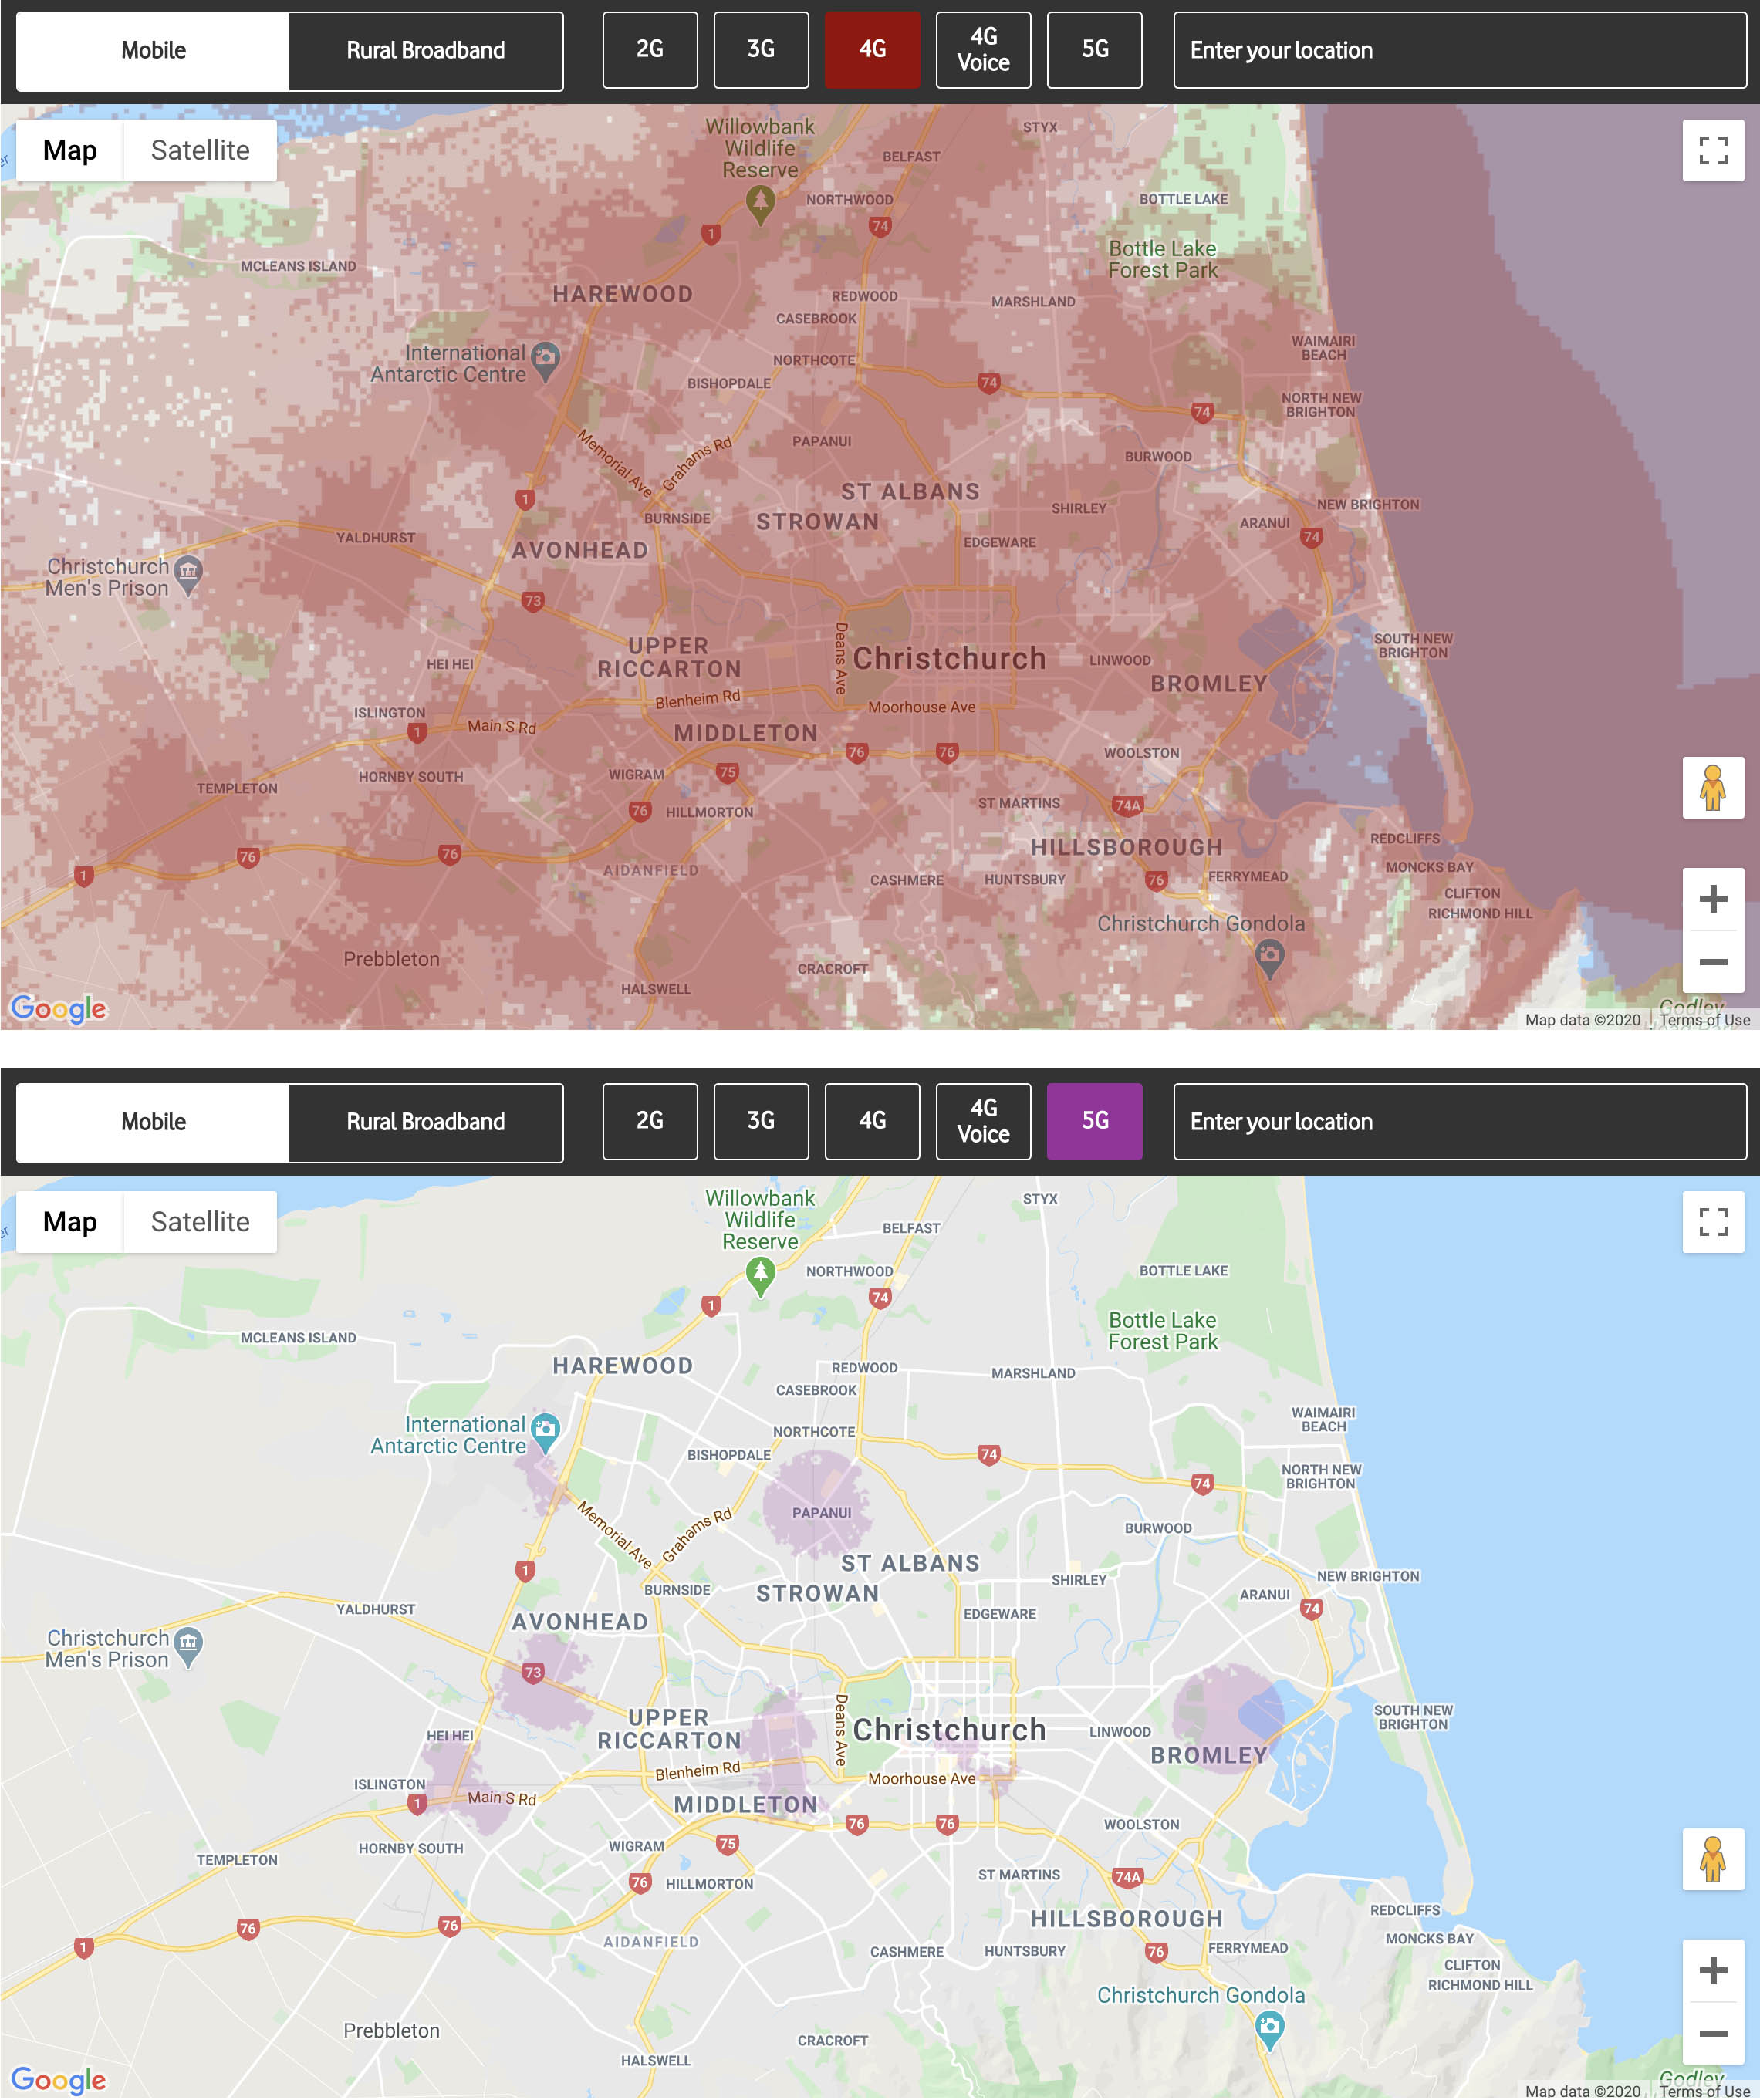 Coverage maps of Christchurch for Vodafone 4G and 5G, 4G hasvastly more coverage.